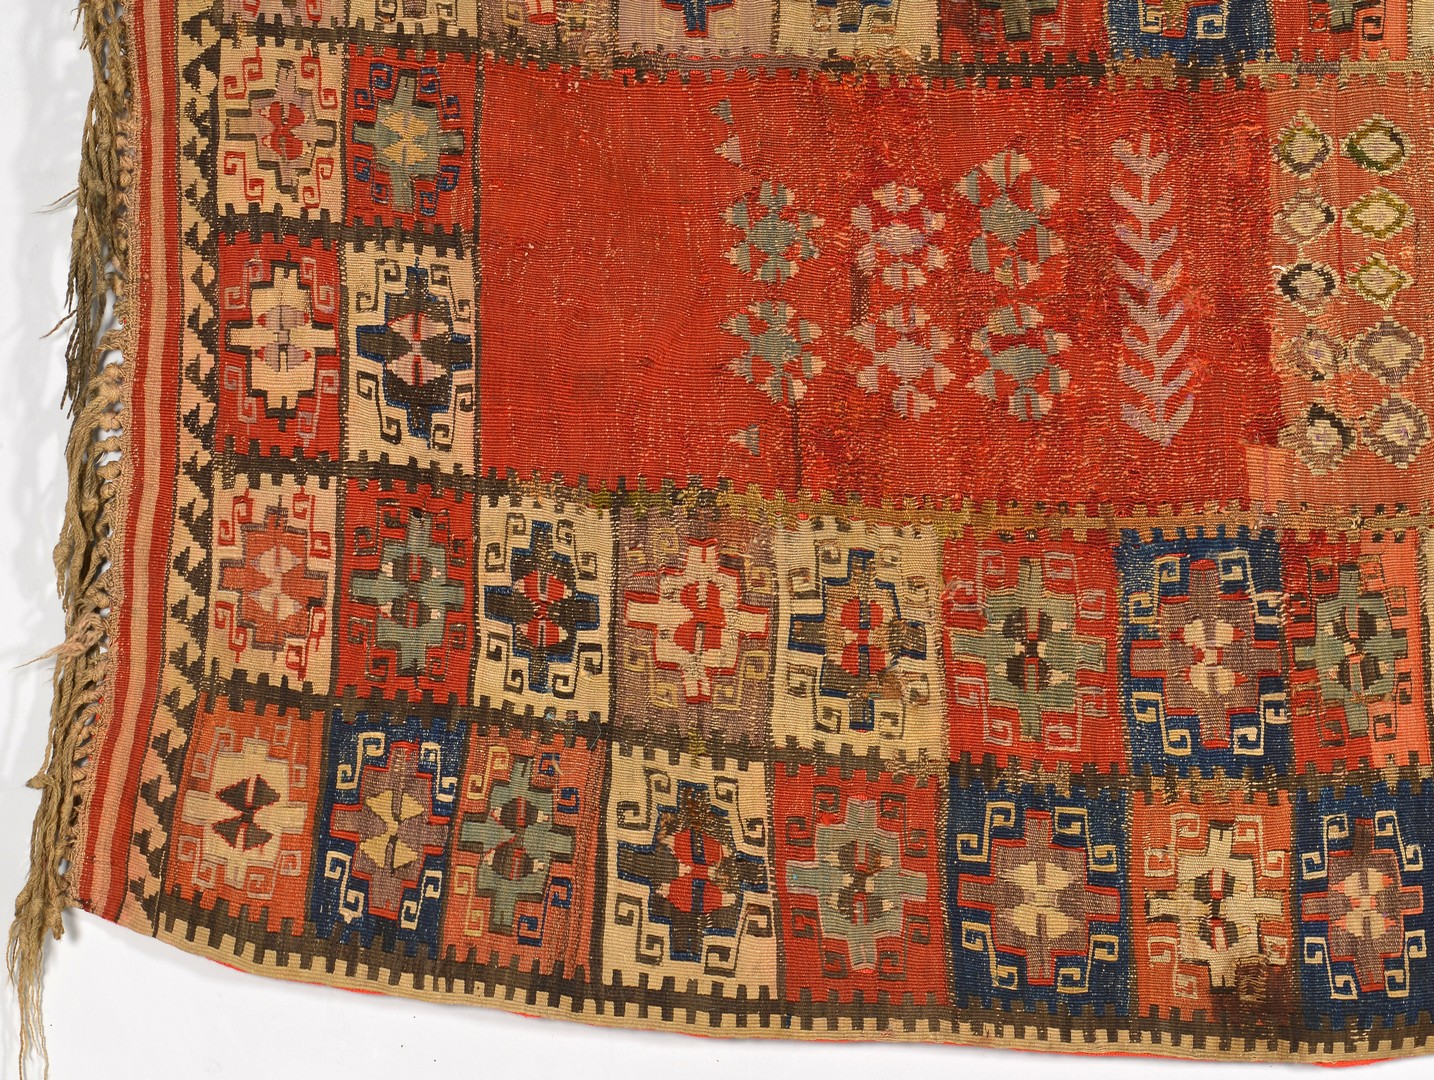 Lot 260: Antique Anatolian Kilim Prayer Rug, 19th century